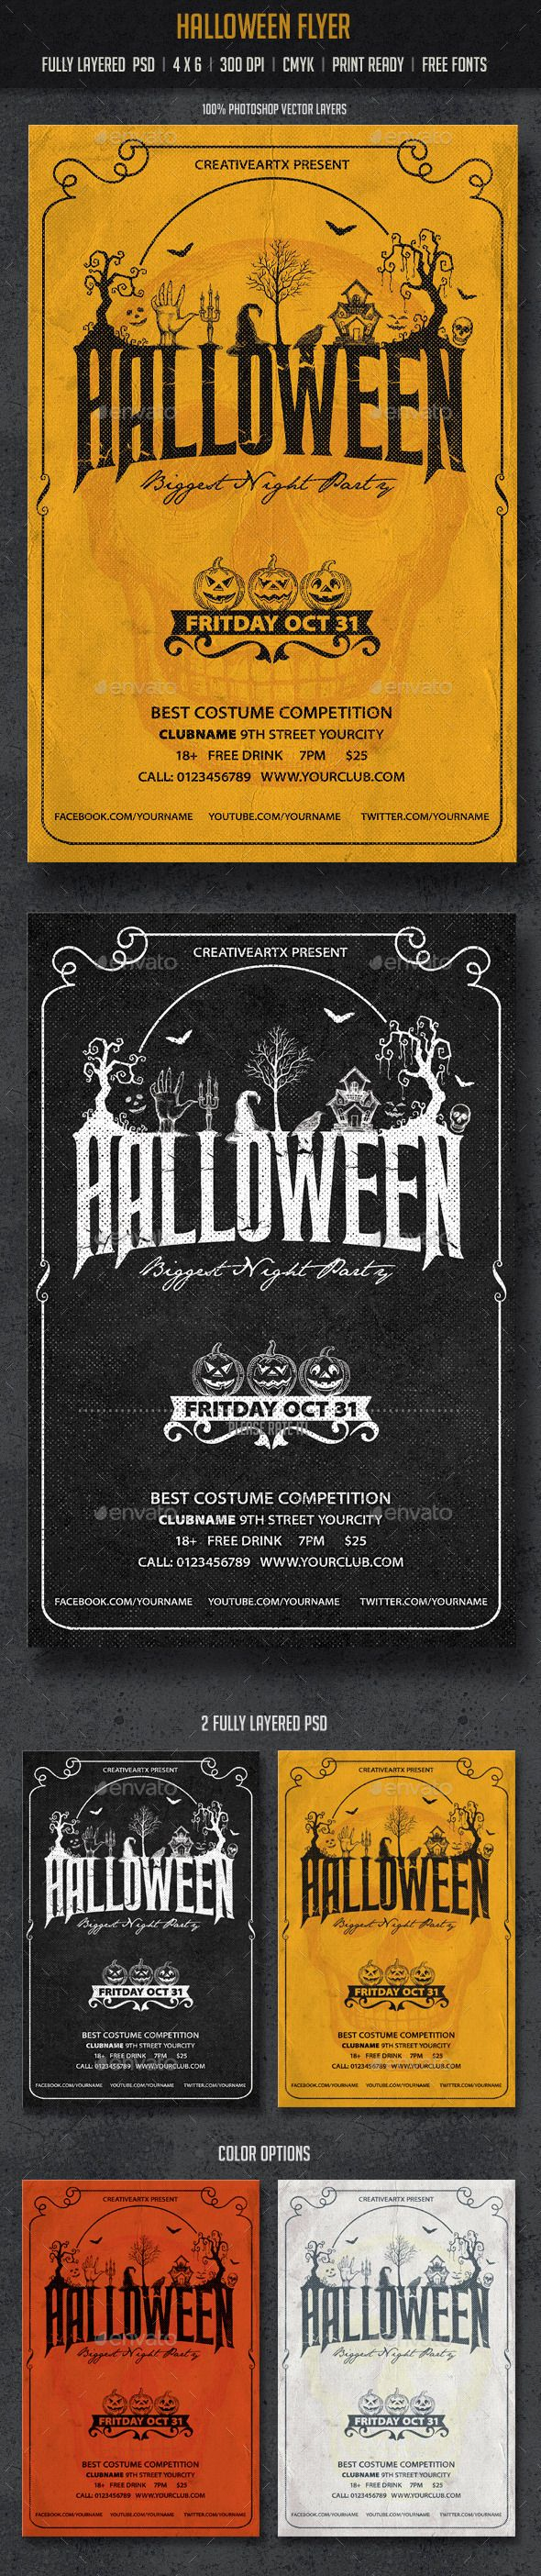 Halloween Flyer Template PSD | Buy and Download: http://graphicriver.net/item/halloween-flyer/8928281?WT.ac=category_thumb&WT.z_author=creativeartx&ref=ksioks